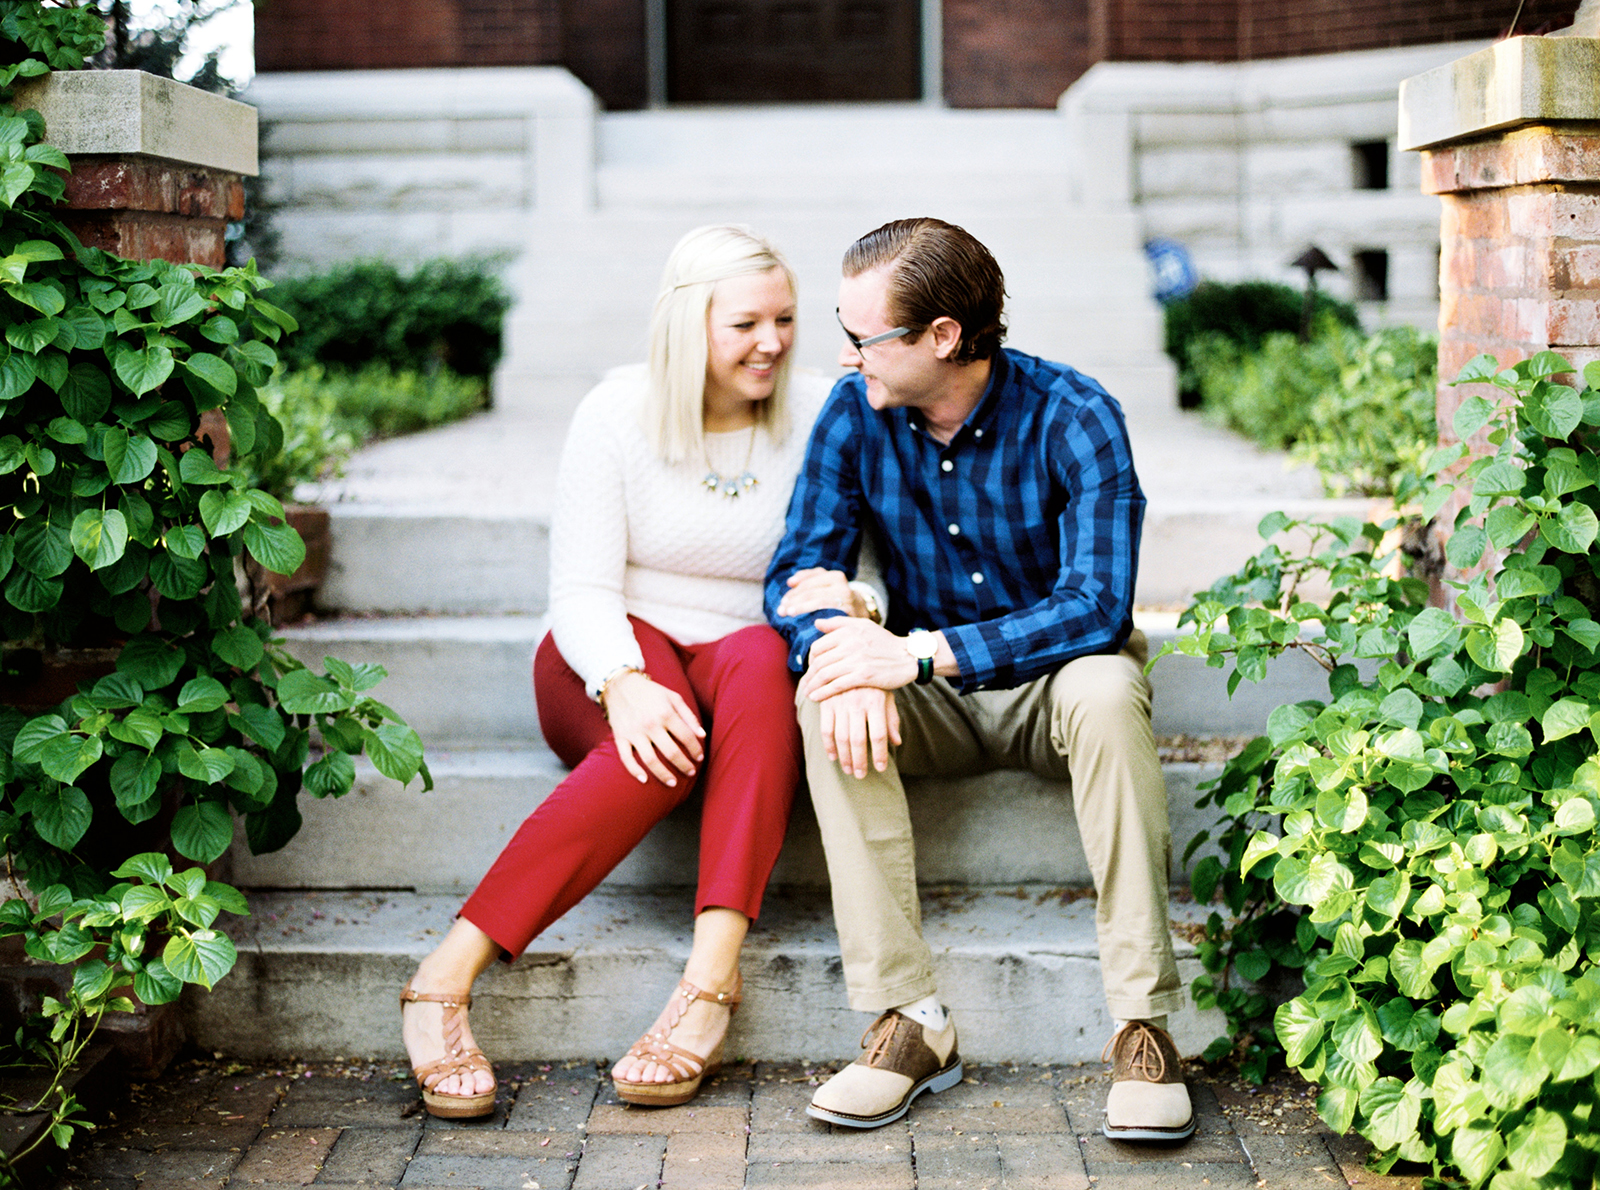 Lafayette Park Engagement Session by Oldani Photography St. Louis Wedding Photographers 49.jpg